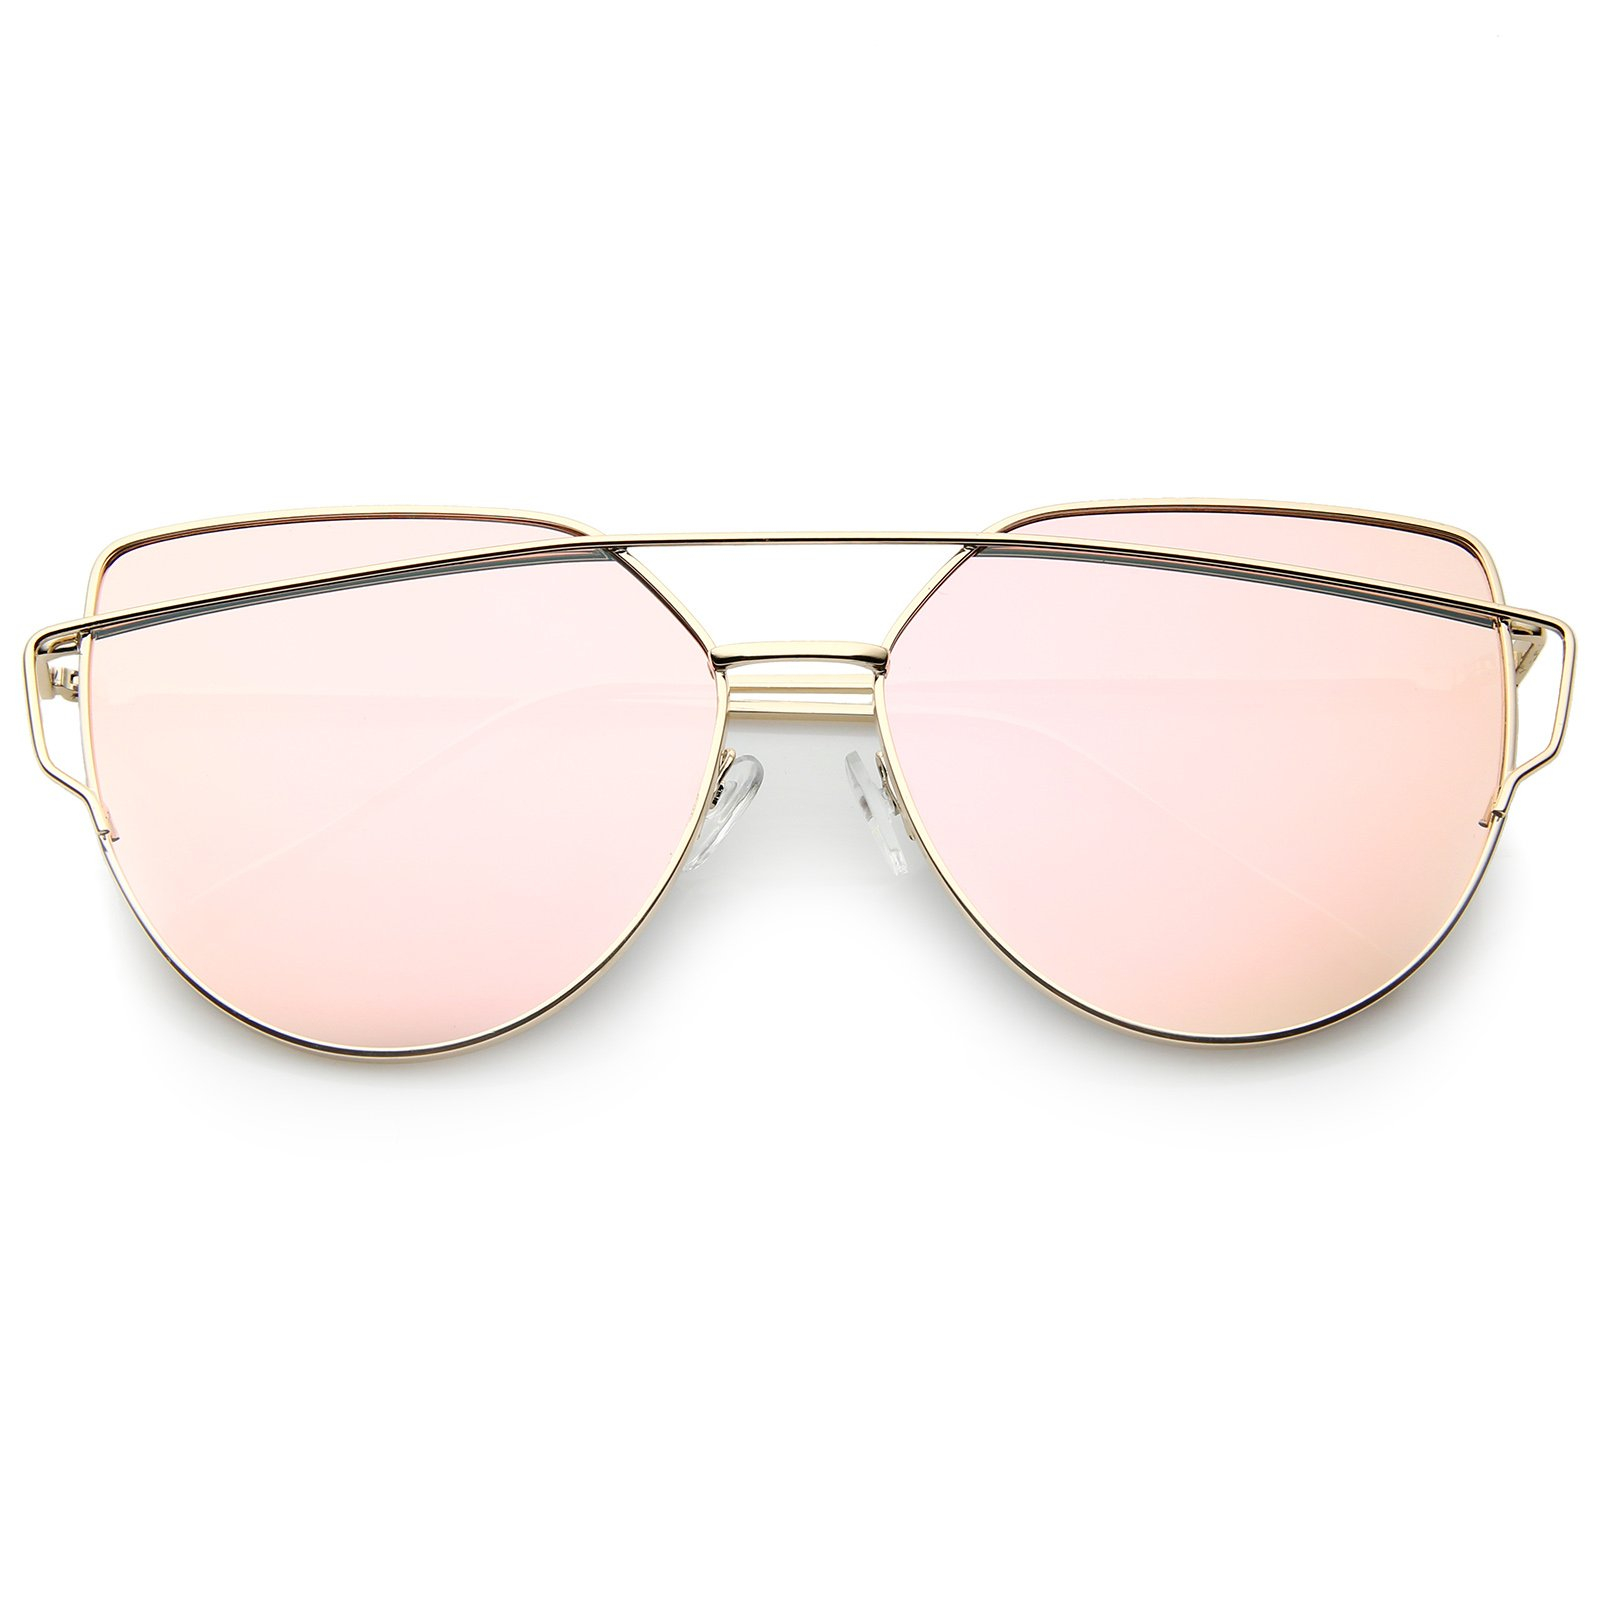 Image of Oversize Thin Cross Brow Mirrored Flat Lens Sunglasses A545